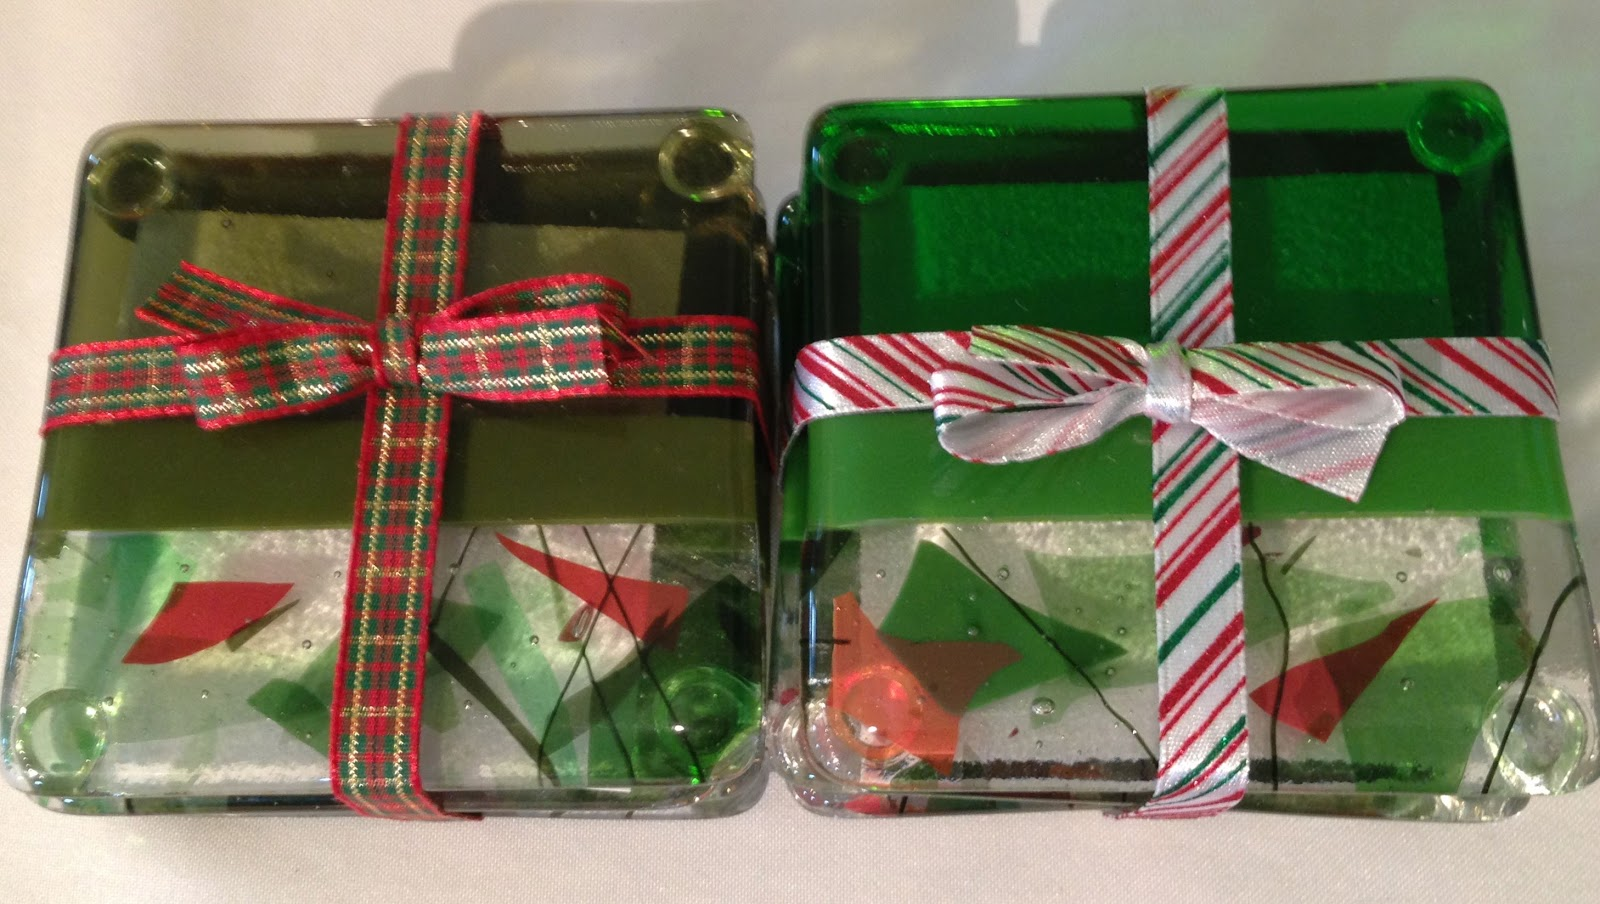 Glass decorations - Last Year I Made These Fused Glass Coasters In Red Which Is Still My Favorite But This Year I Expanded The Color Spectrum To Include An Olive And